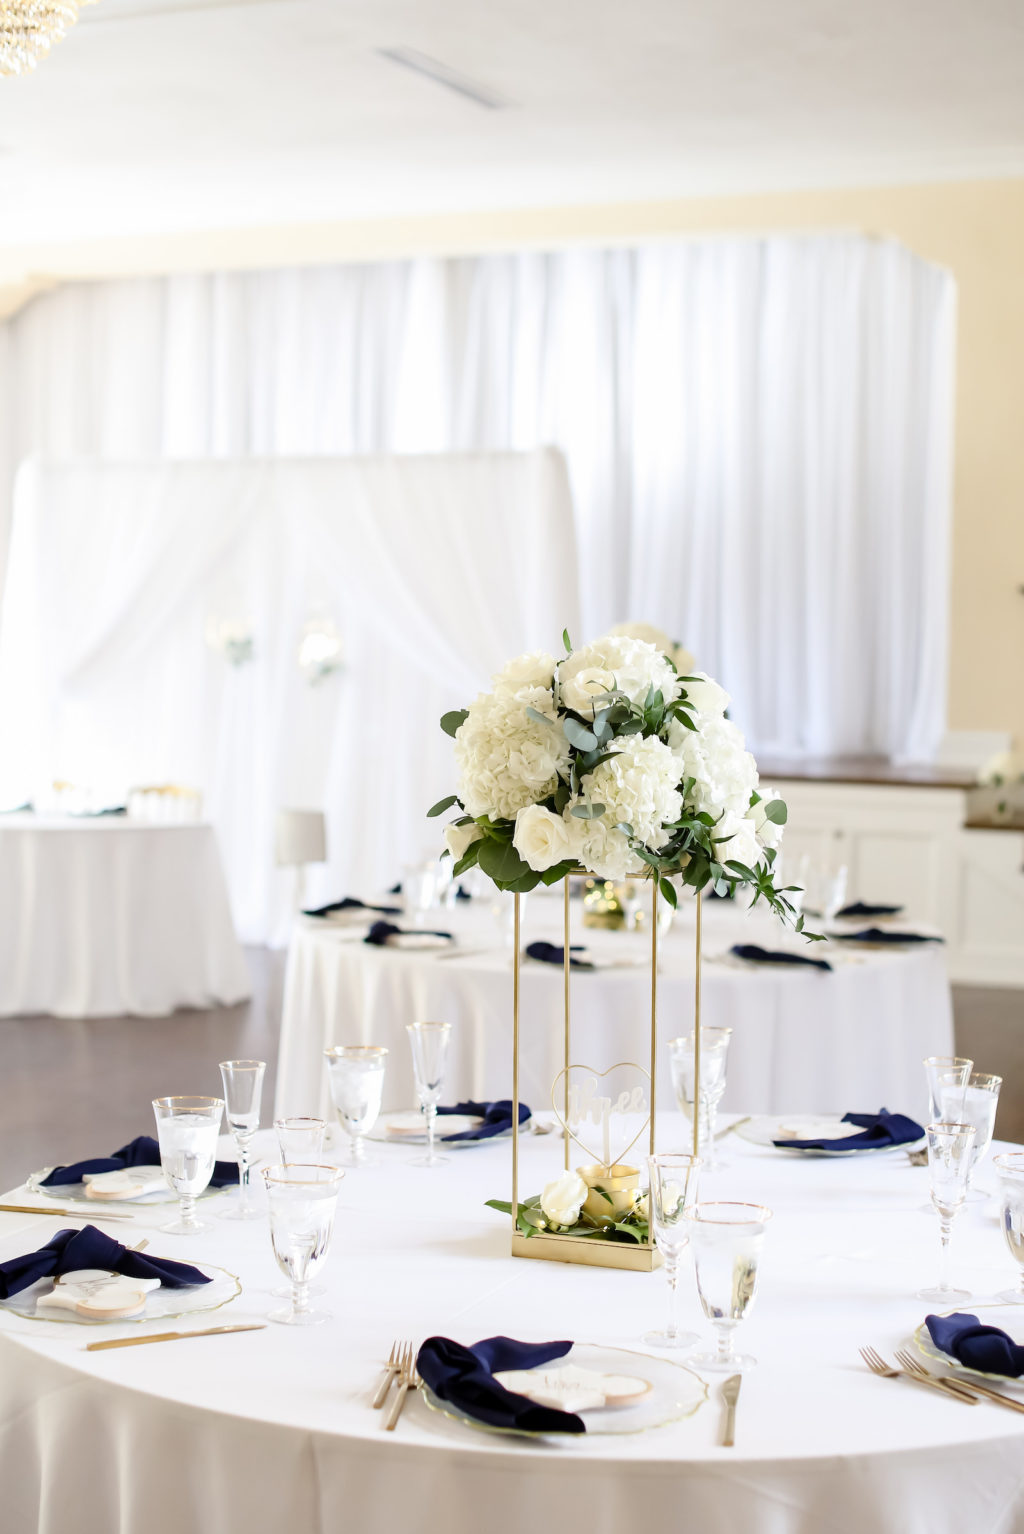 Classic Wedding Reception Decor, White Table Linens, Navy Blue Linen Napkins, Gold Flatware and Stand with White Hydrangeas, Roses and Greenery Floral Centerpiece | Tampa Bay Wedding Photographer Lifelong Photography Studio | Wedding Planner Core Concepts | Wedding Rentals A Chair Affair | Kate Ryan Event Rentals